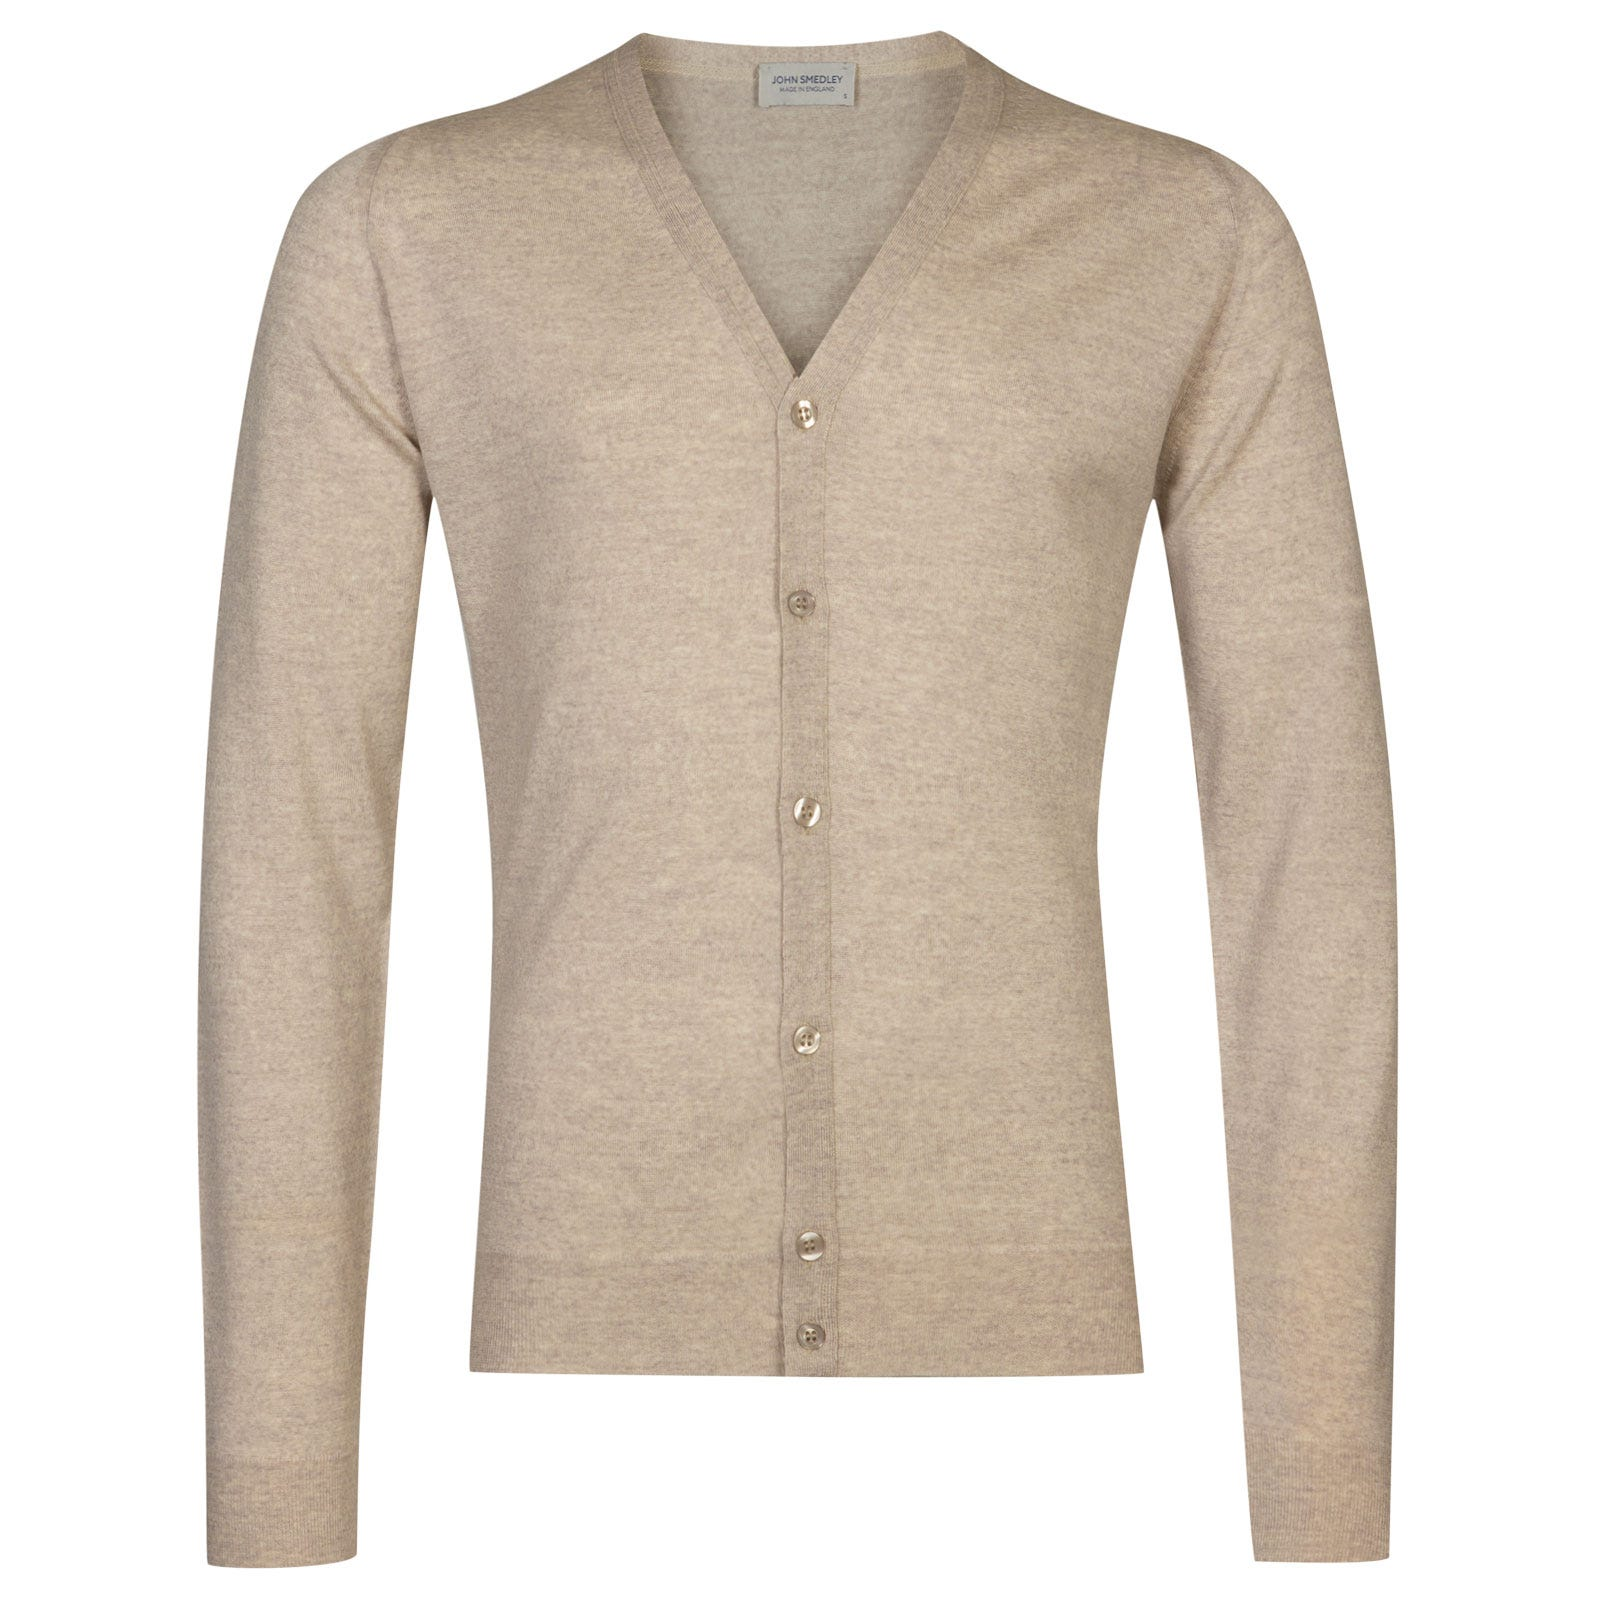 John Smedley Petworth Merino Wool Cardigan in Eastwood Beige-XL